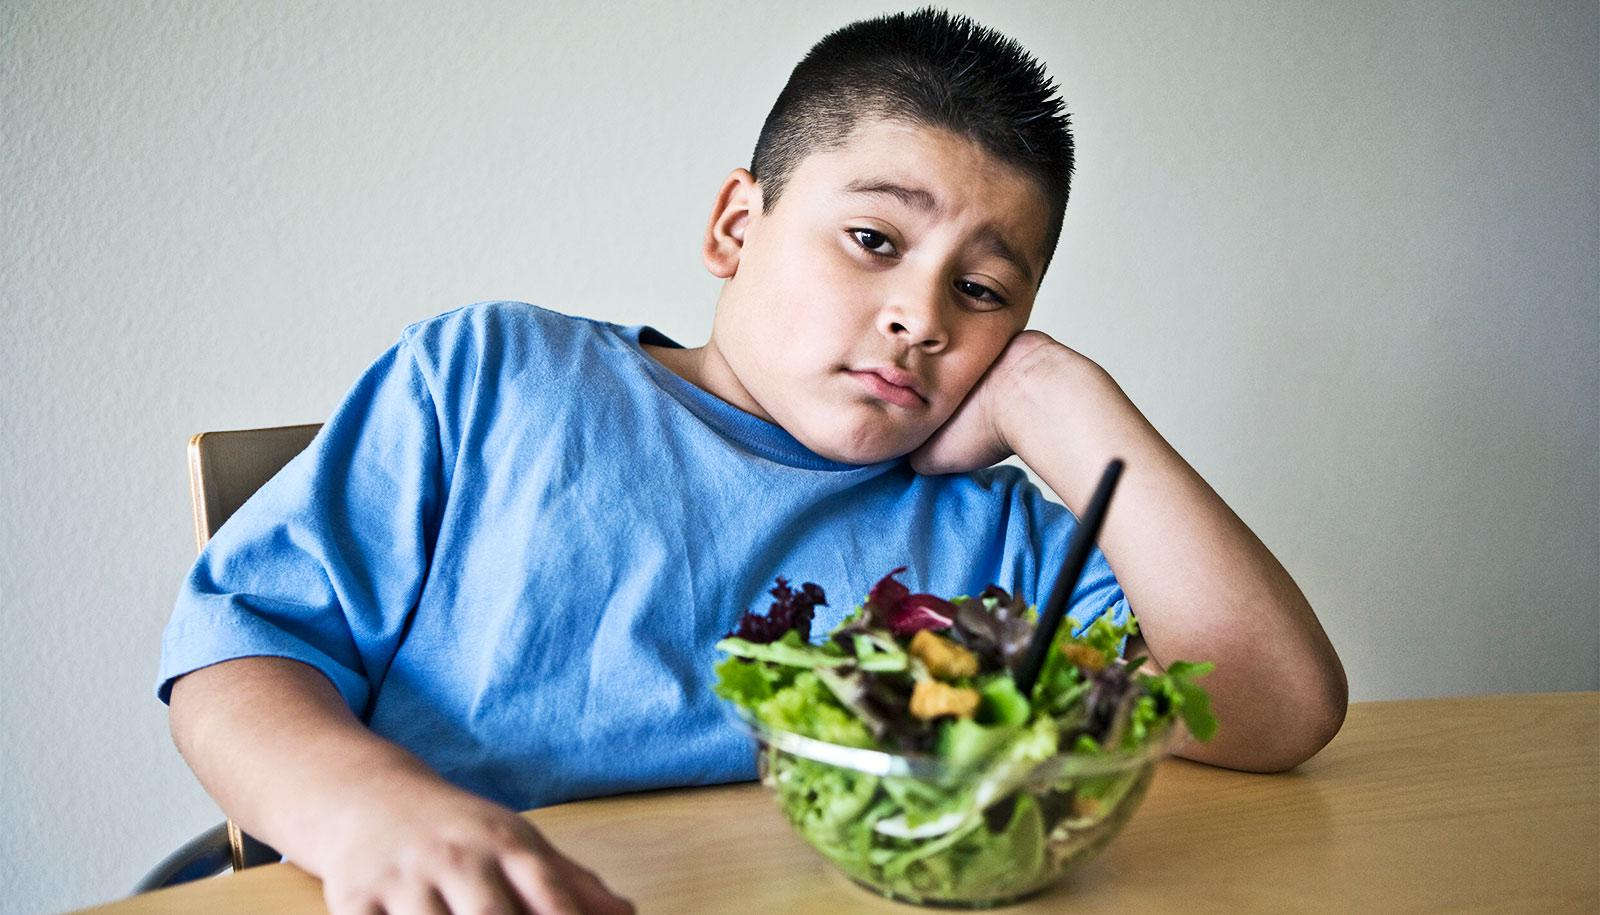 A young boy in a blue shirt sits in front of a bowl of salad with a skeptical or disappointed look